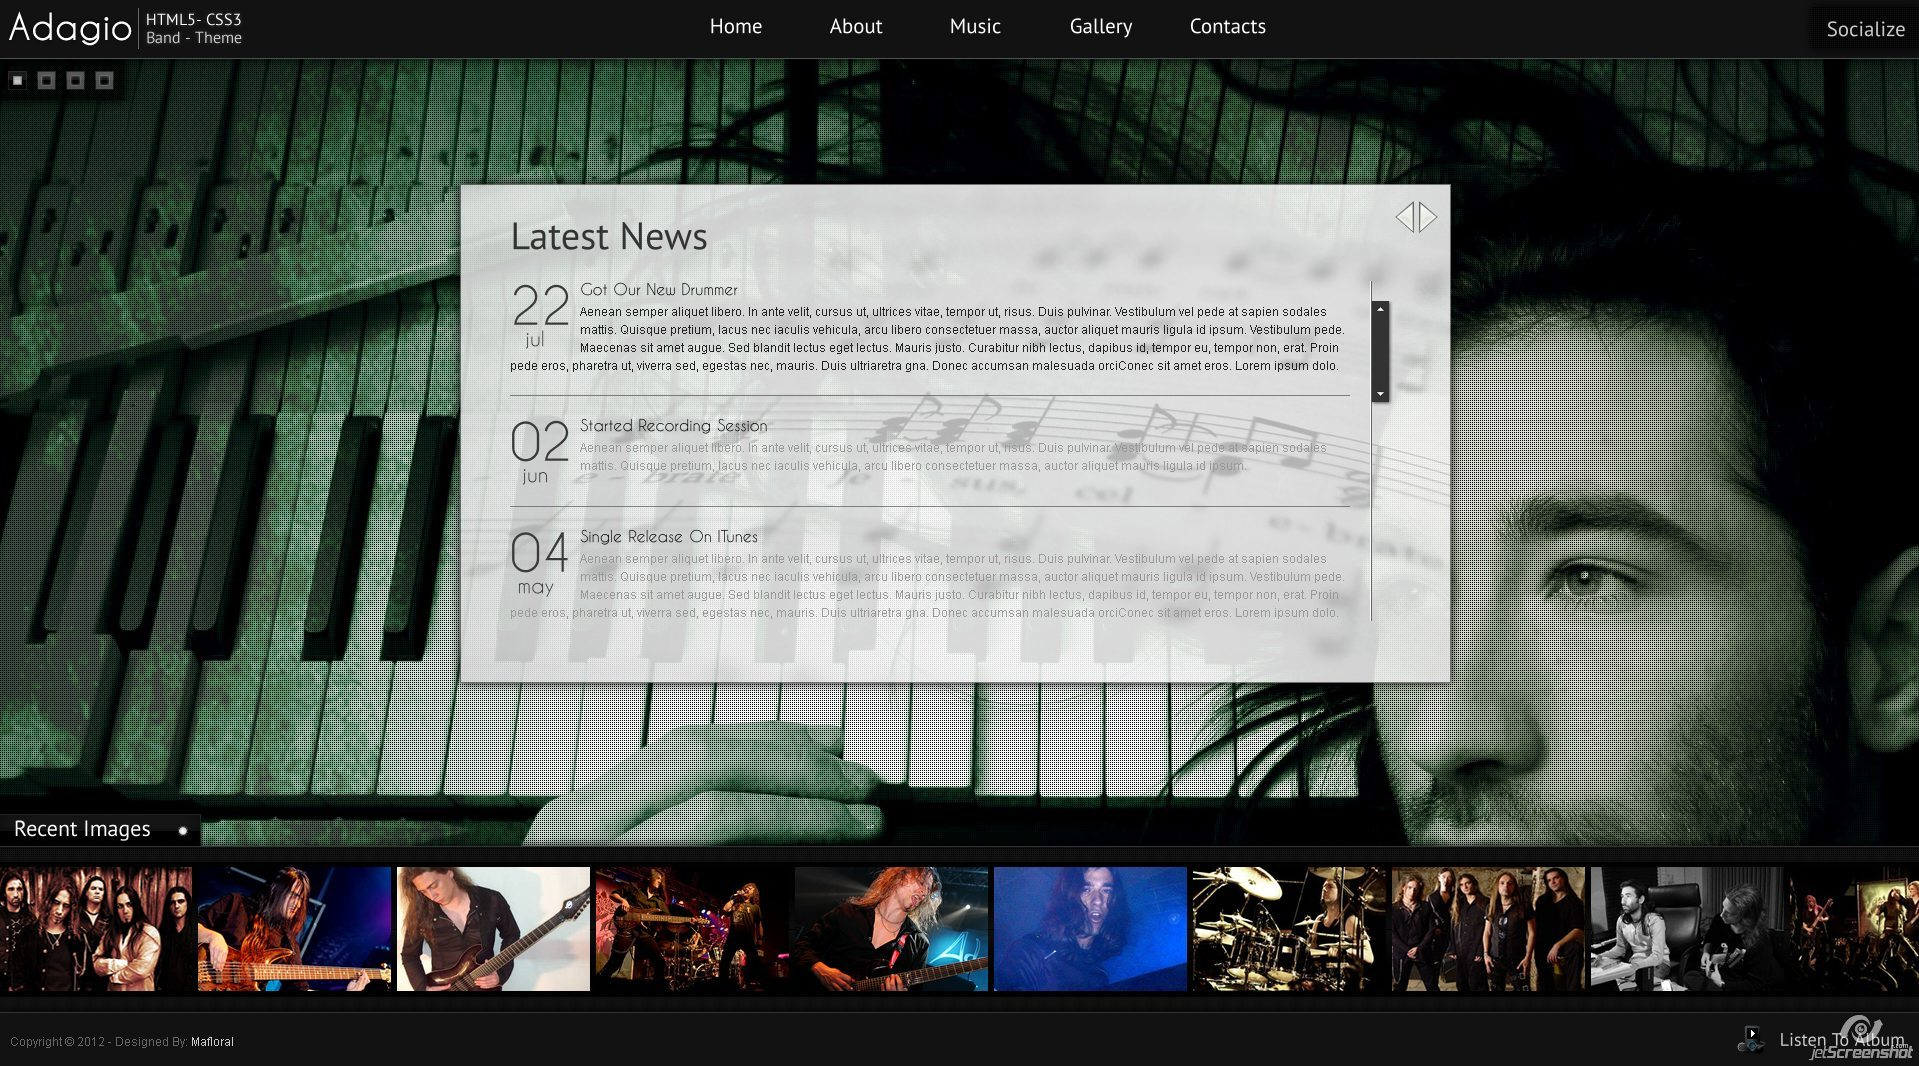 Adagio Musician Template - HTML5 - CSS3 - News Page